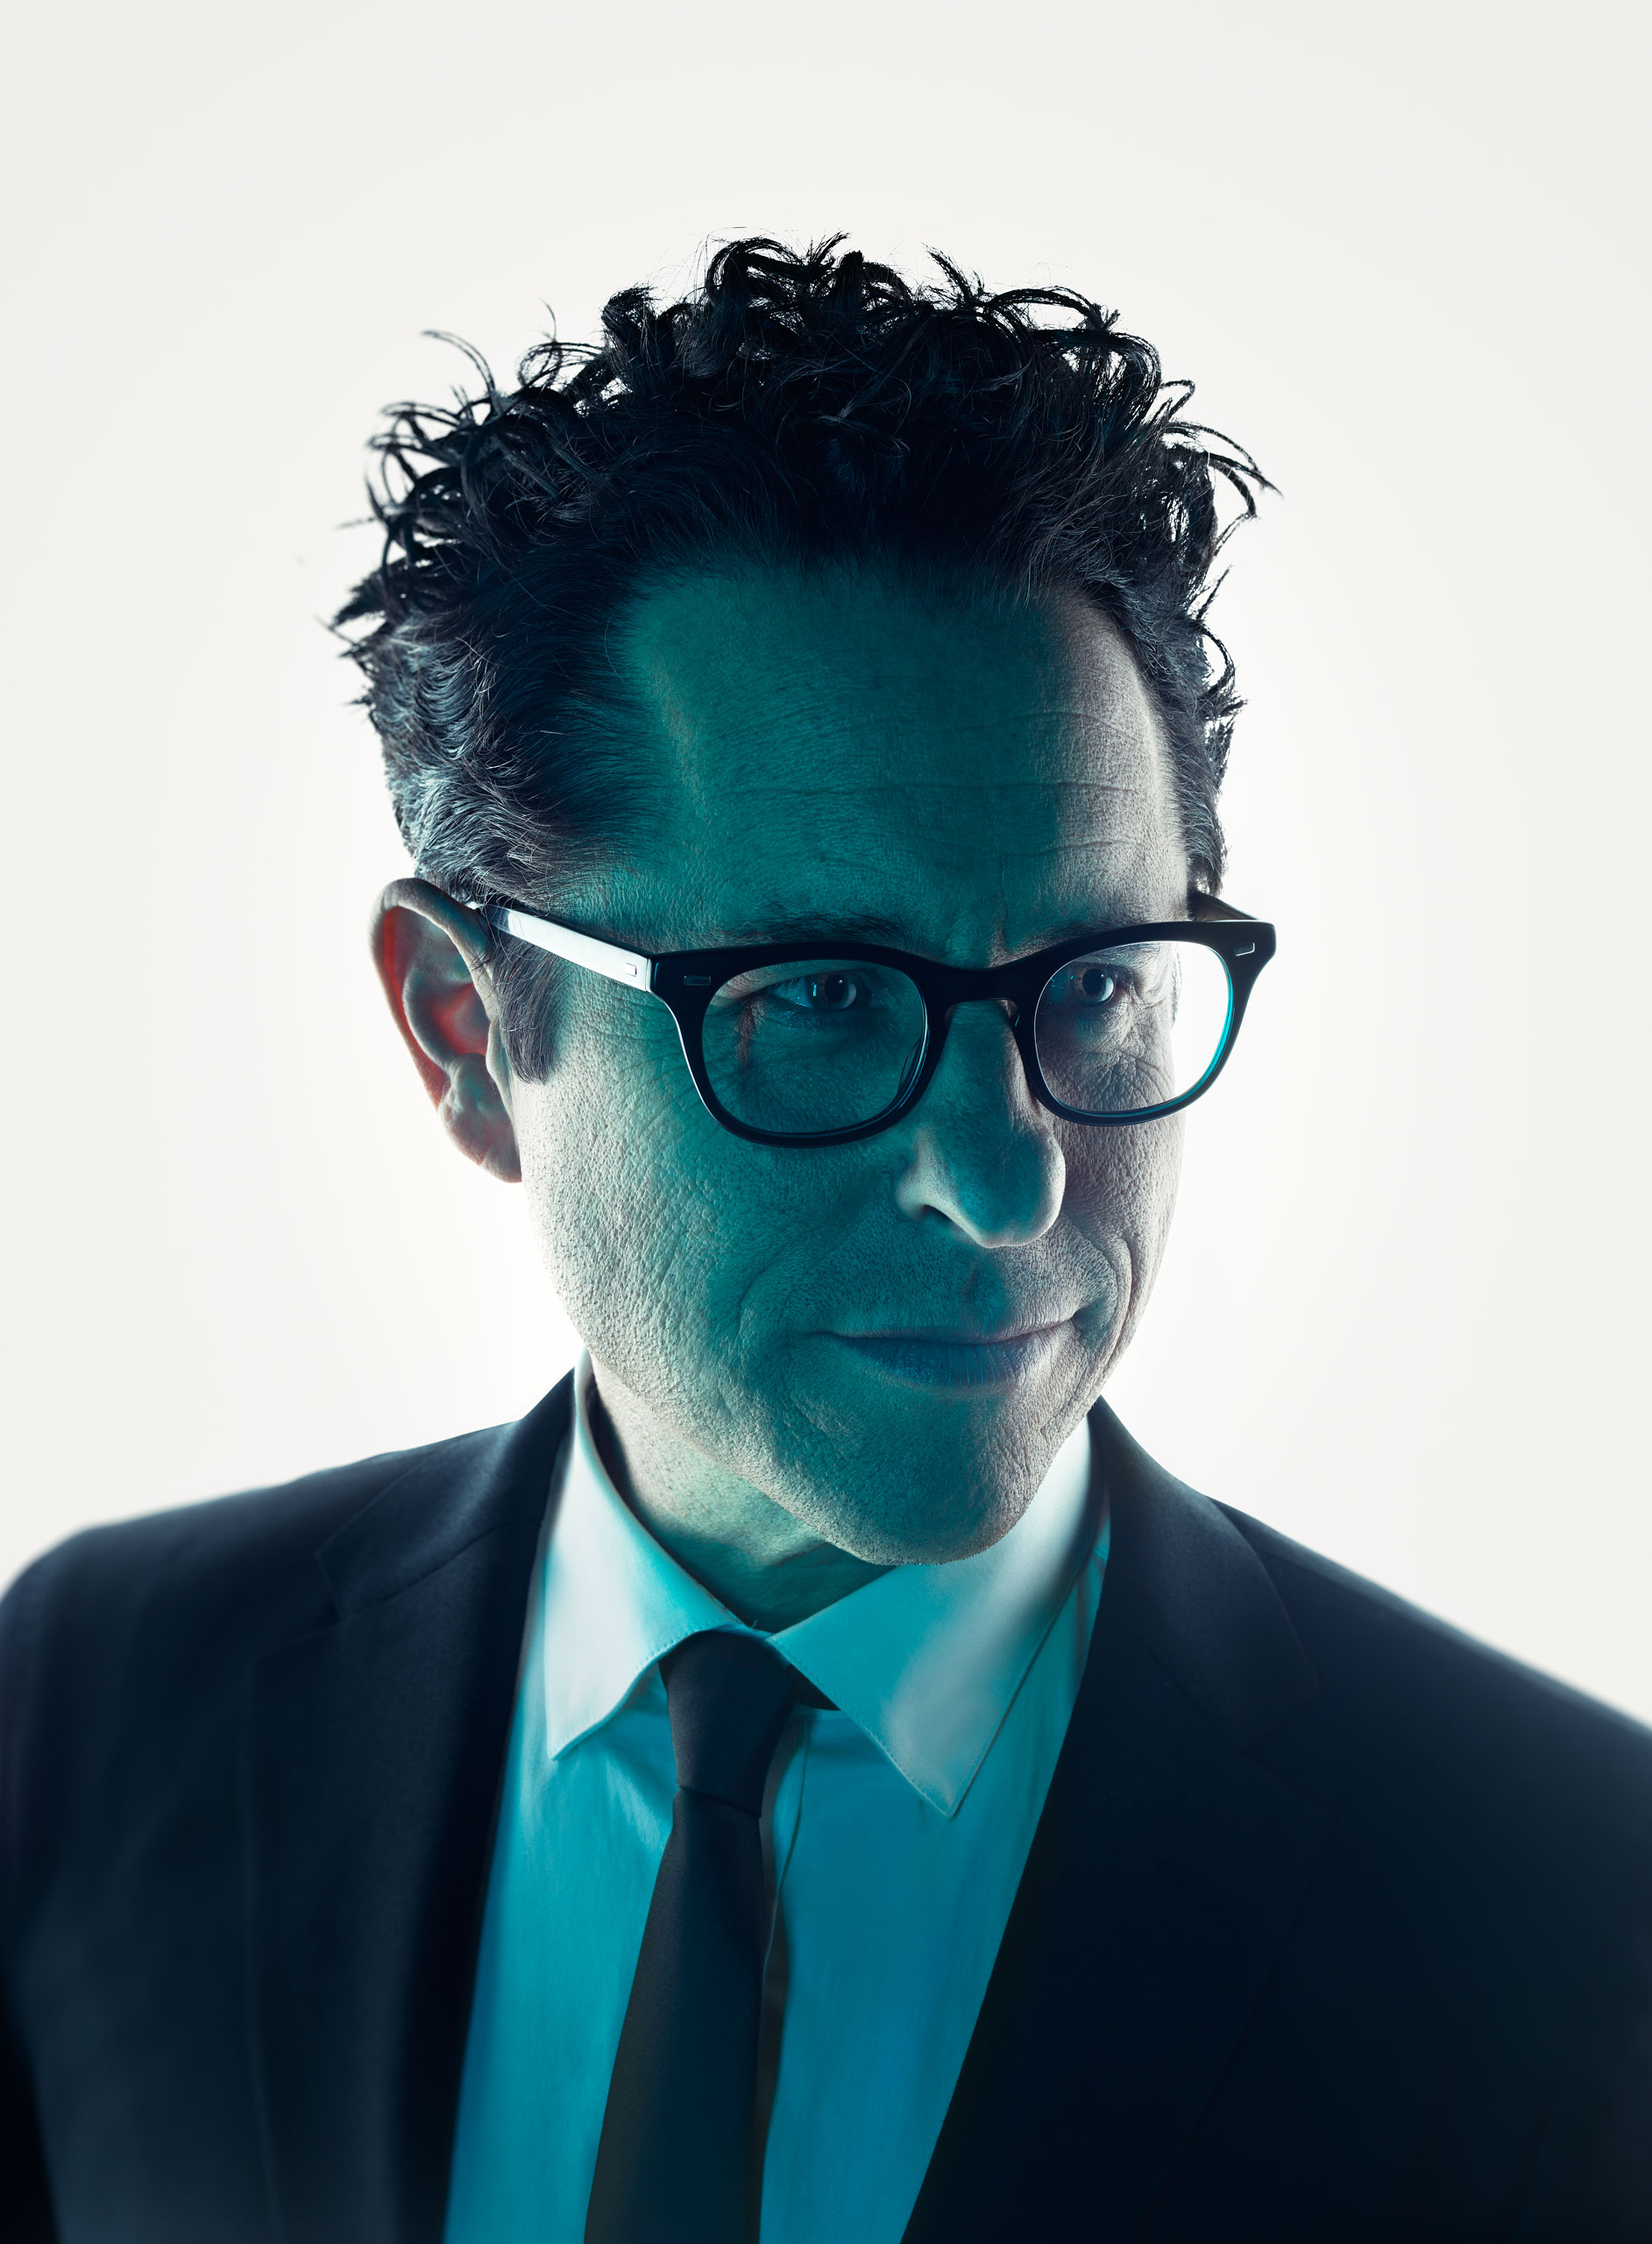 JJ Abrams photographed for TIME on October 26, 2015 in Los Angeles.